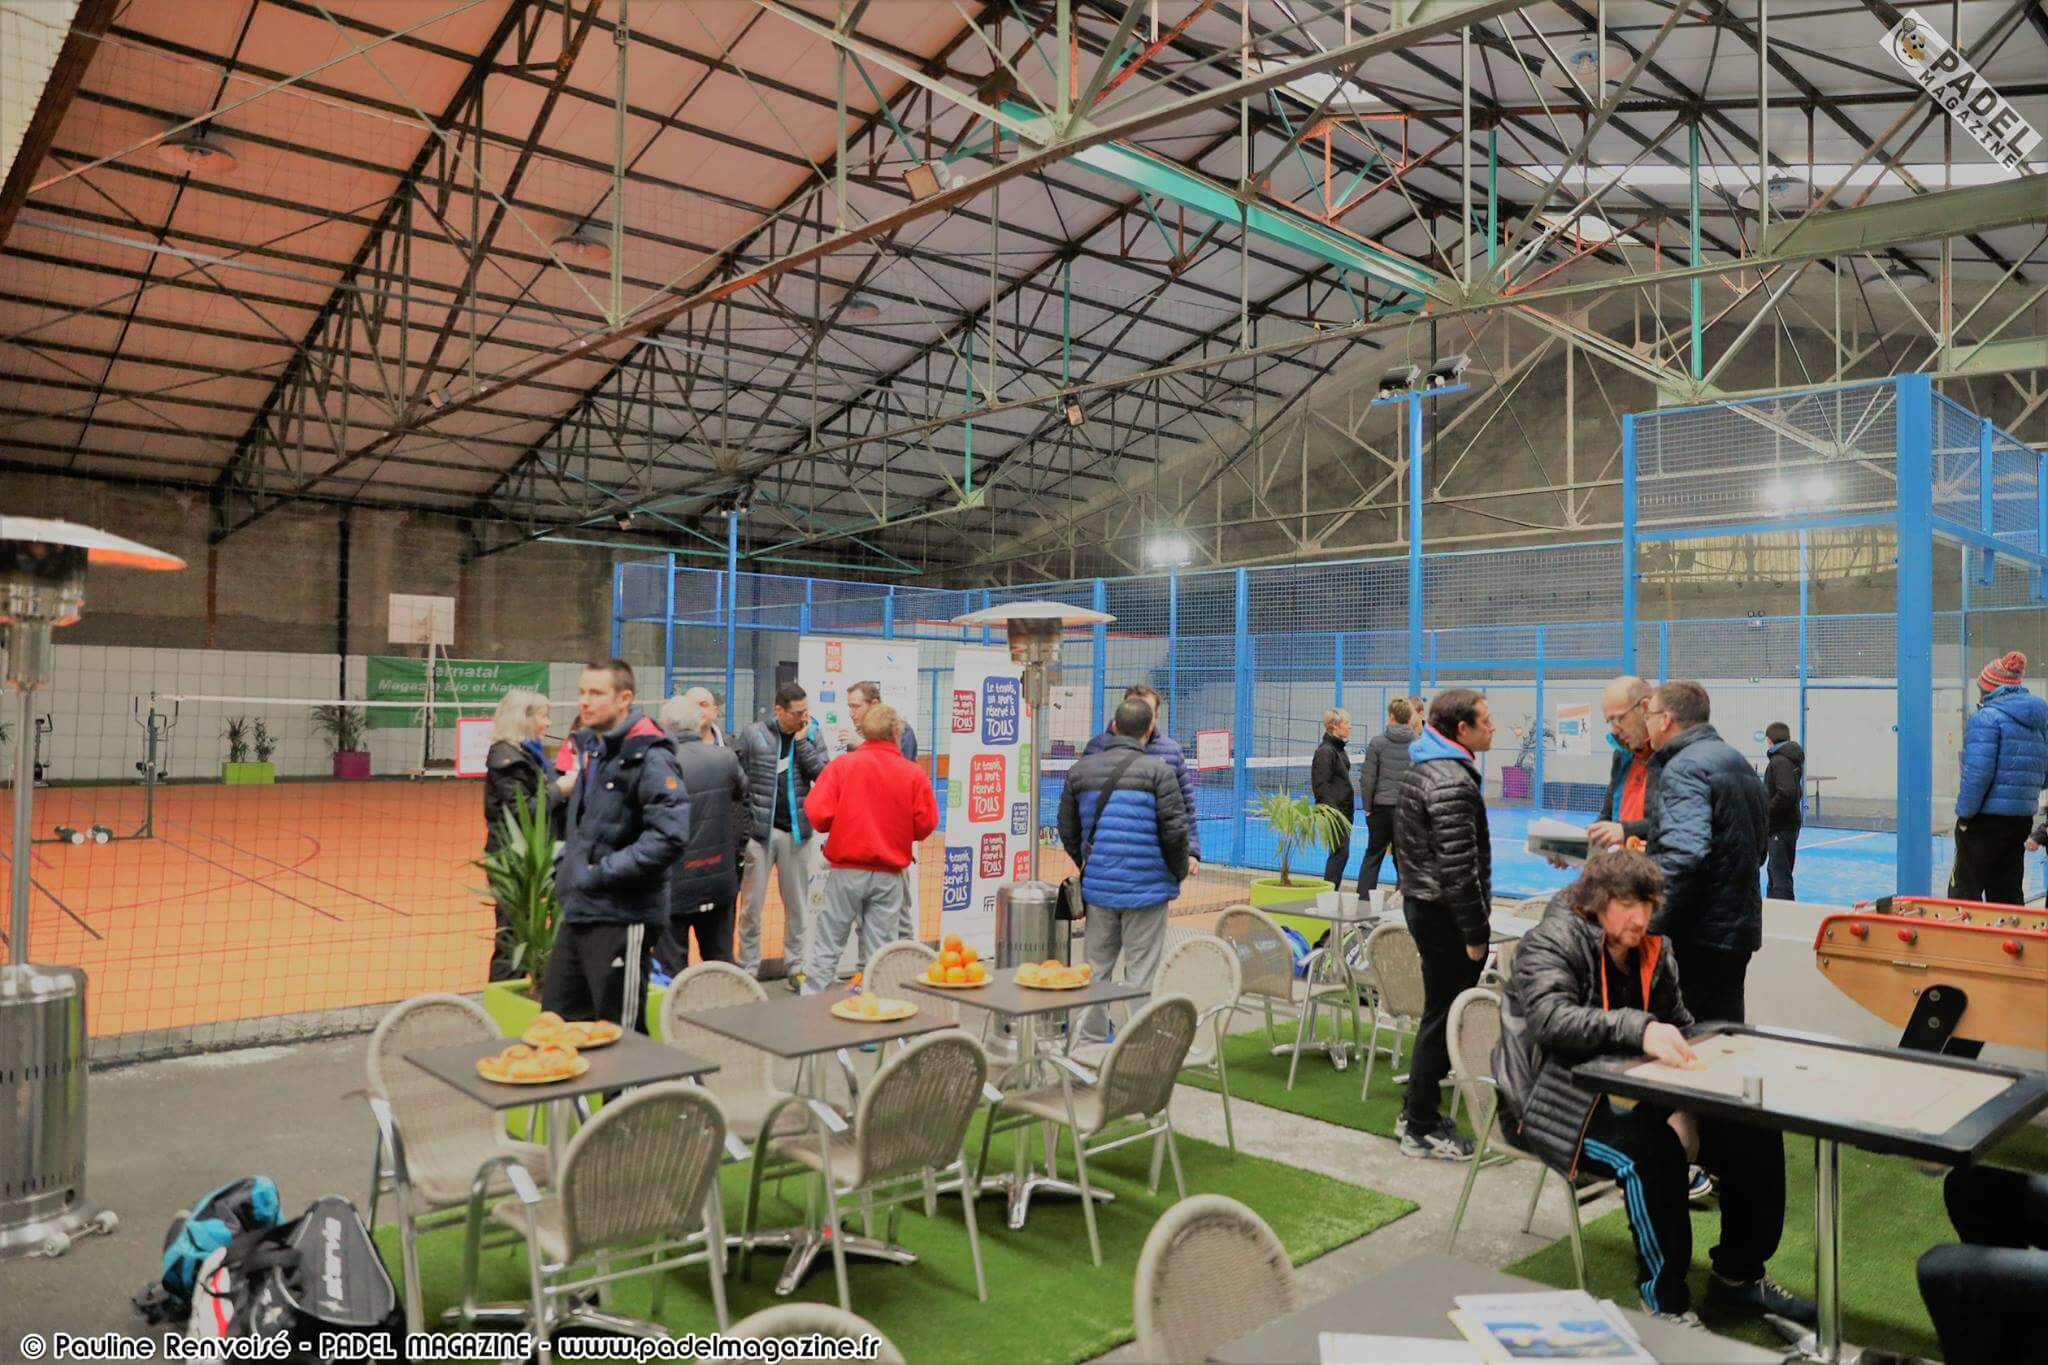 Place in the padel in Champagne!